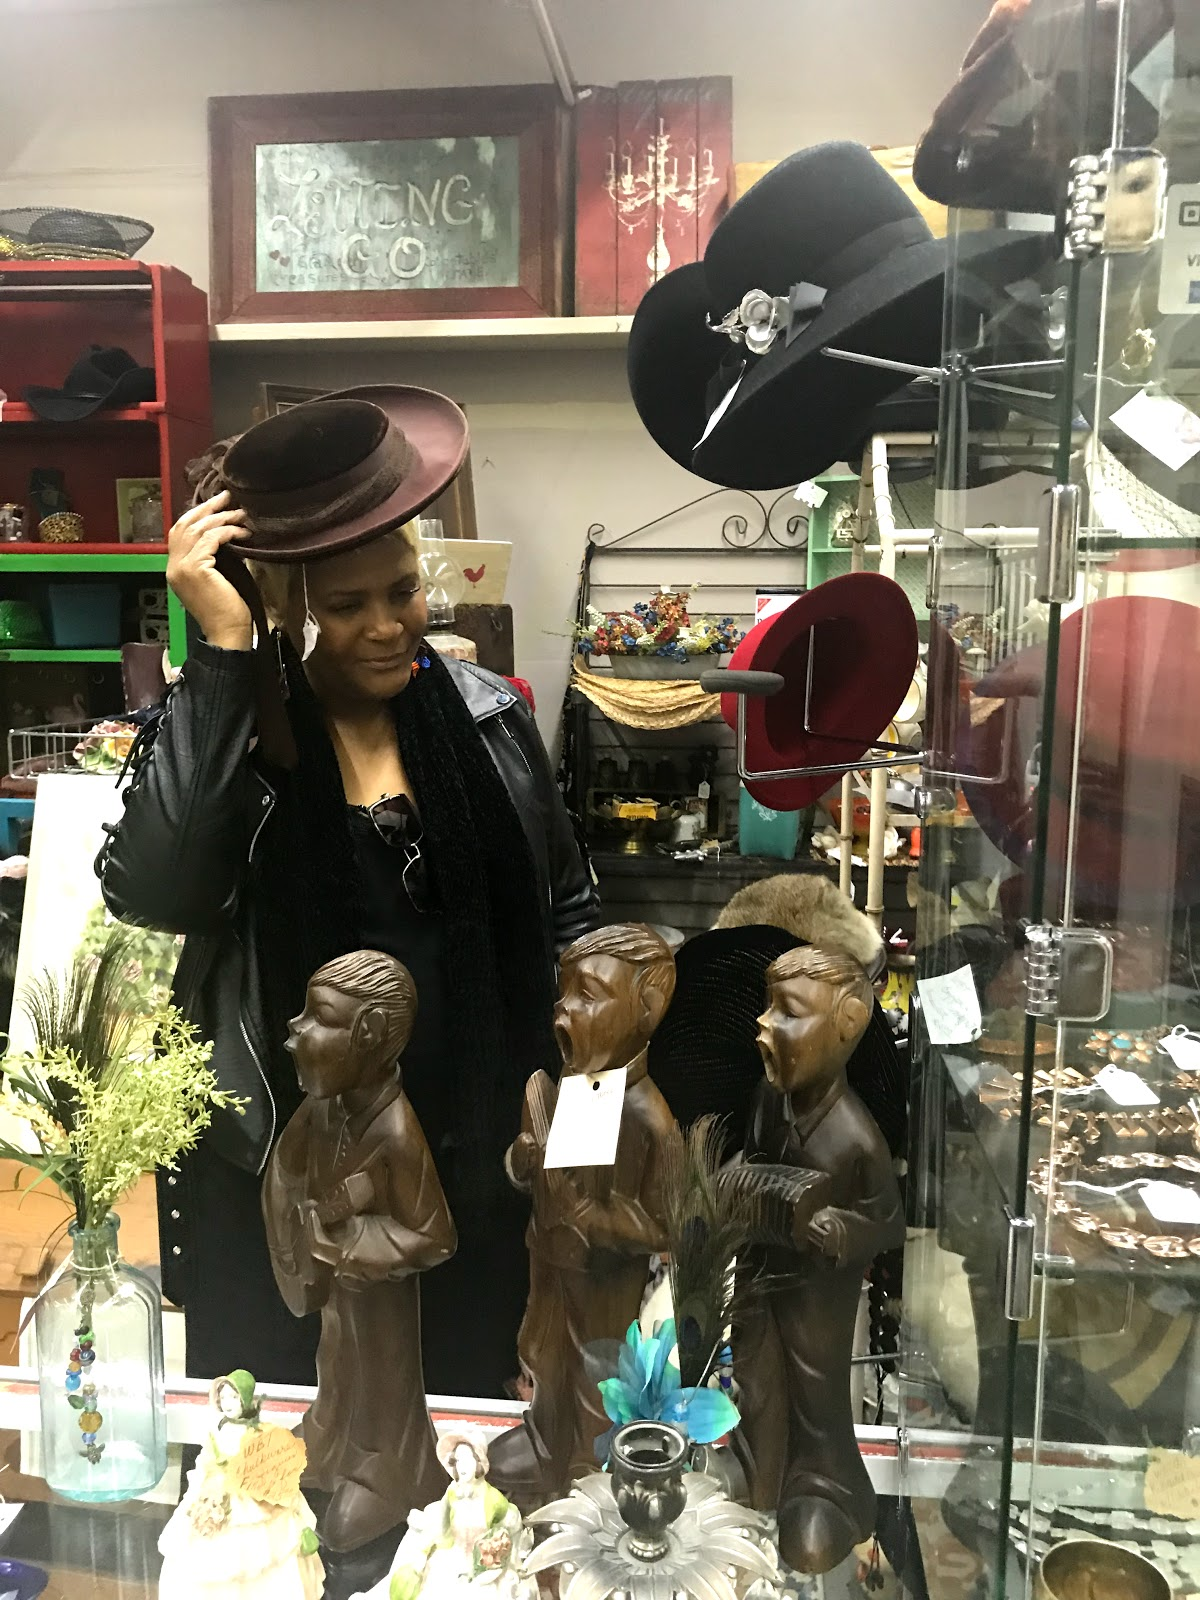 Image: Woman trying on hats at thrift store. Morning Babbes